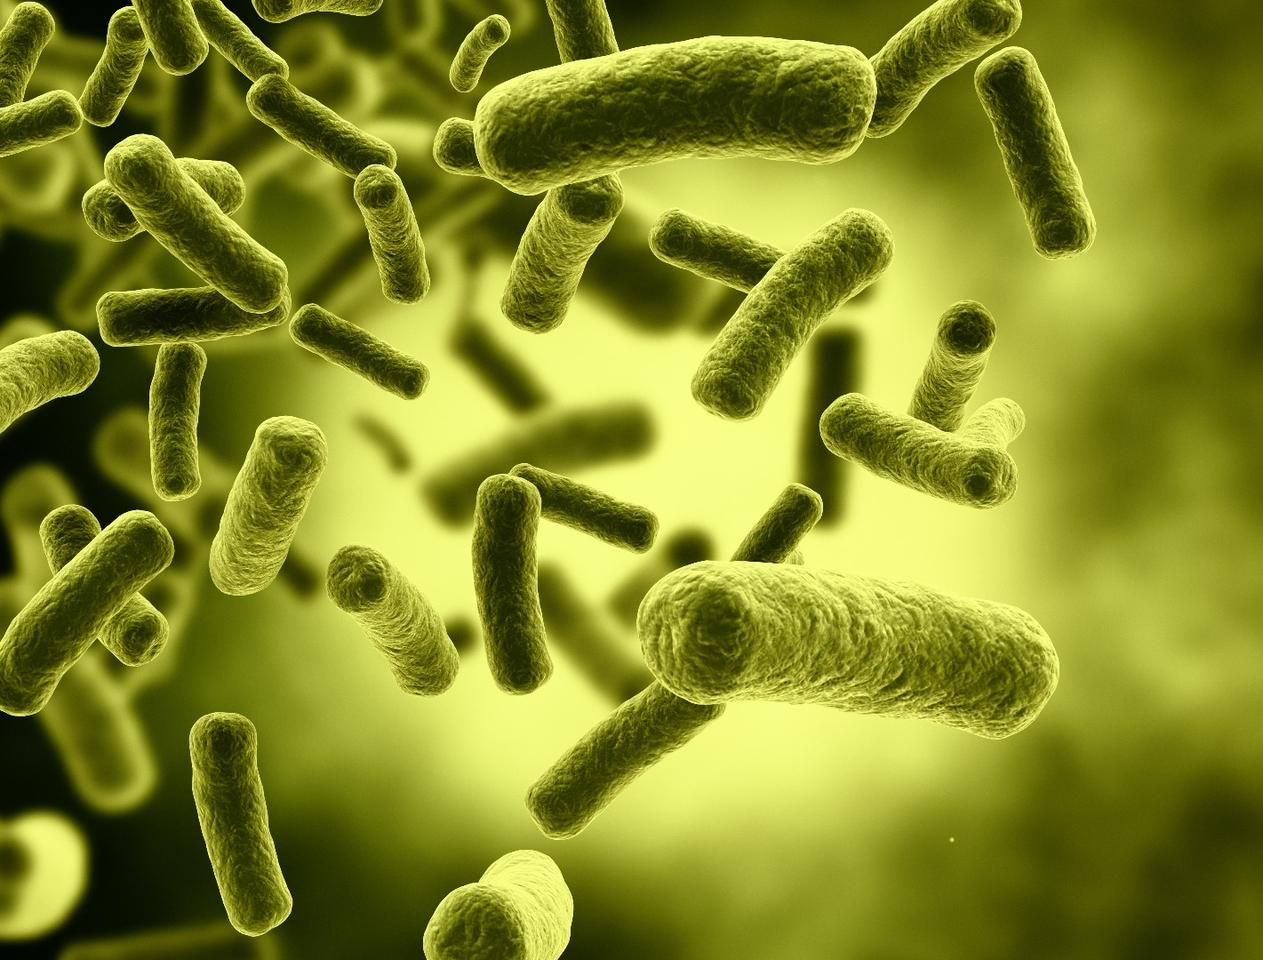 The researchers were able to break up bacterial biofilms, making them much easier to treat